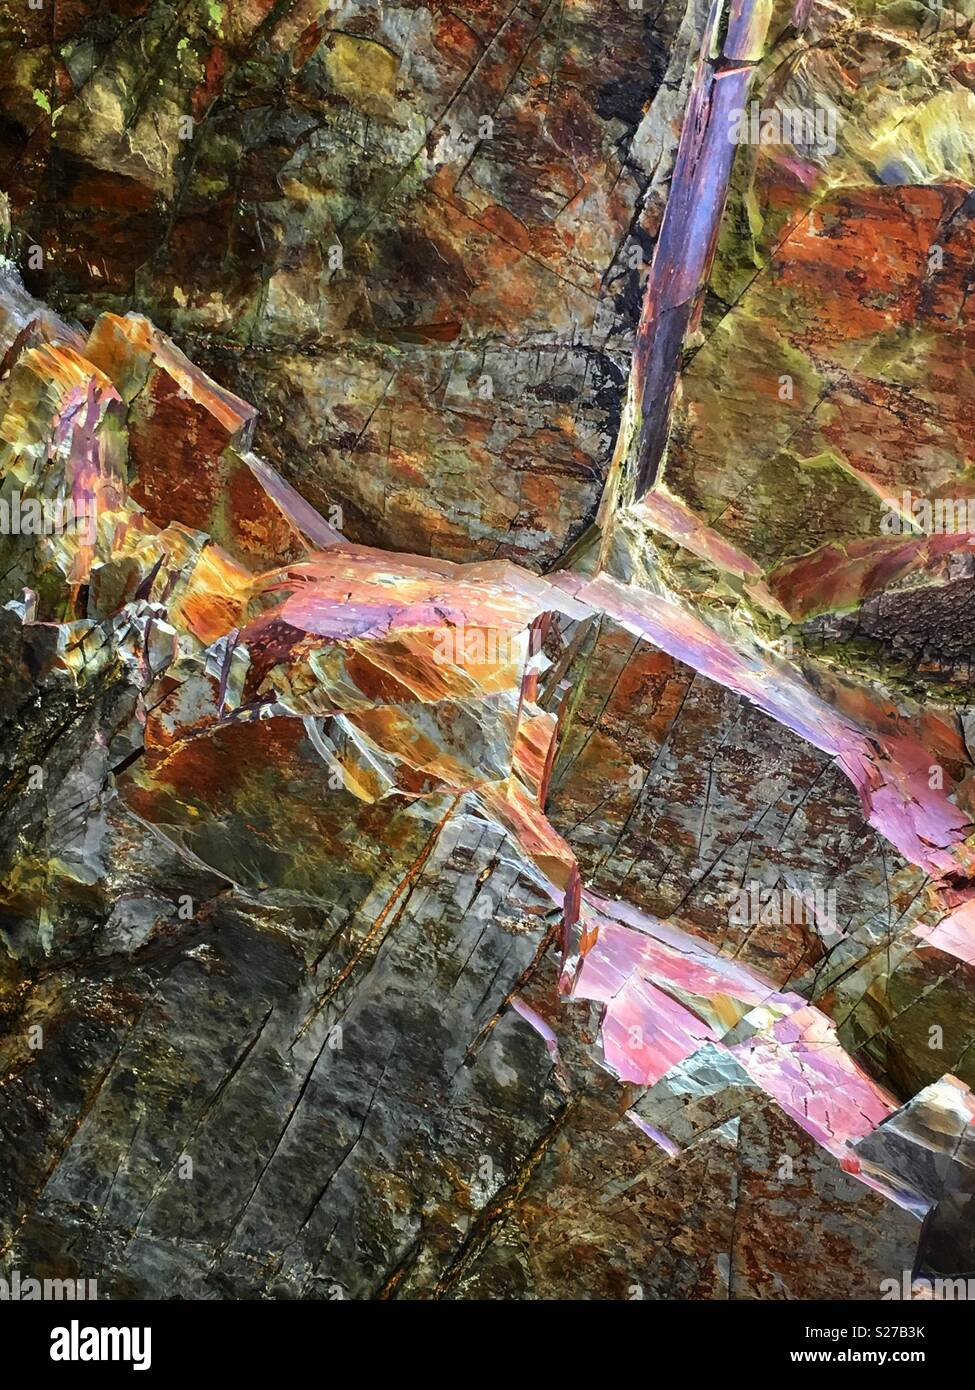 Natural exposed rock from the sea presented as an abstract tile. - Stock Image